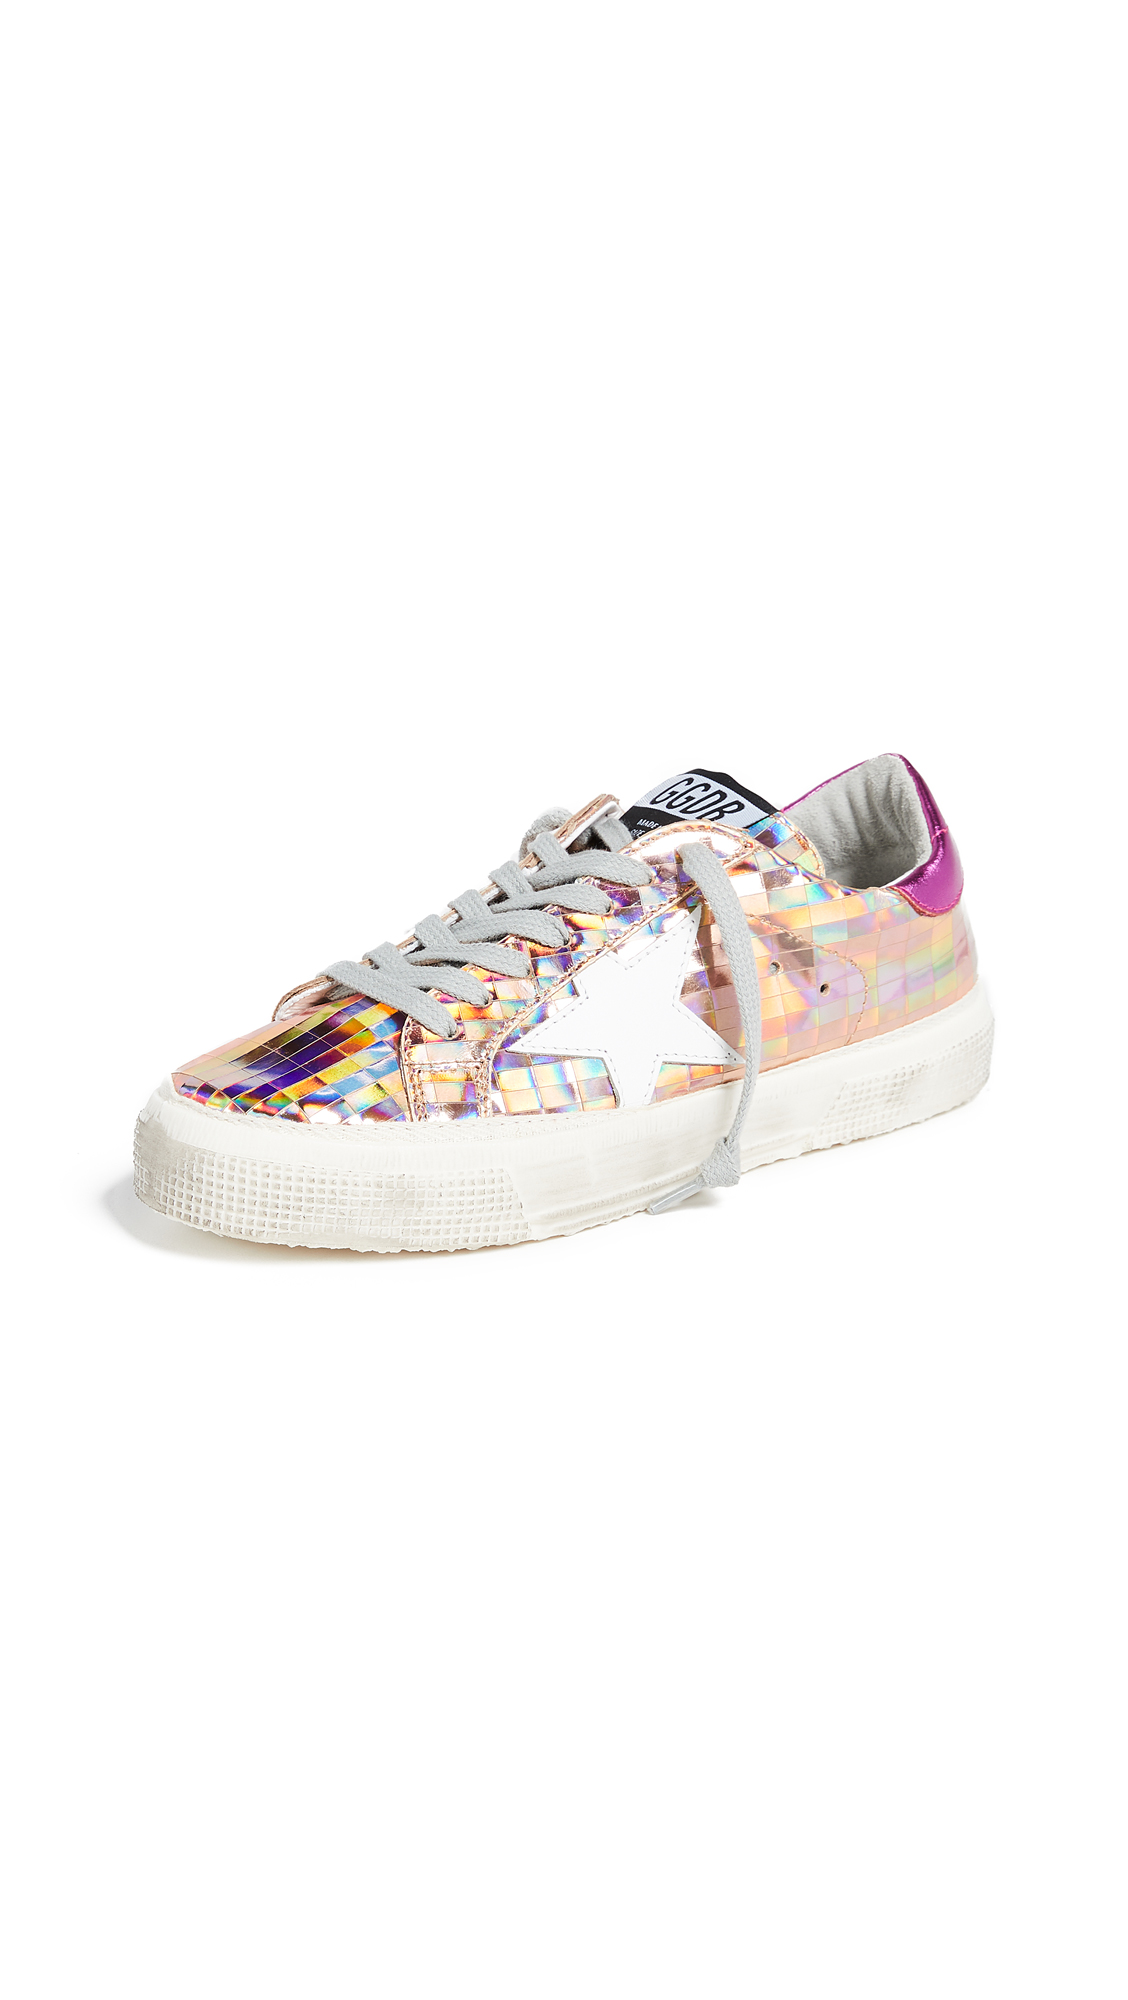 Golden Goose May Sneakers - Silver Mirror/Fuchsia